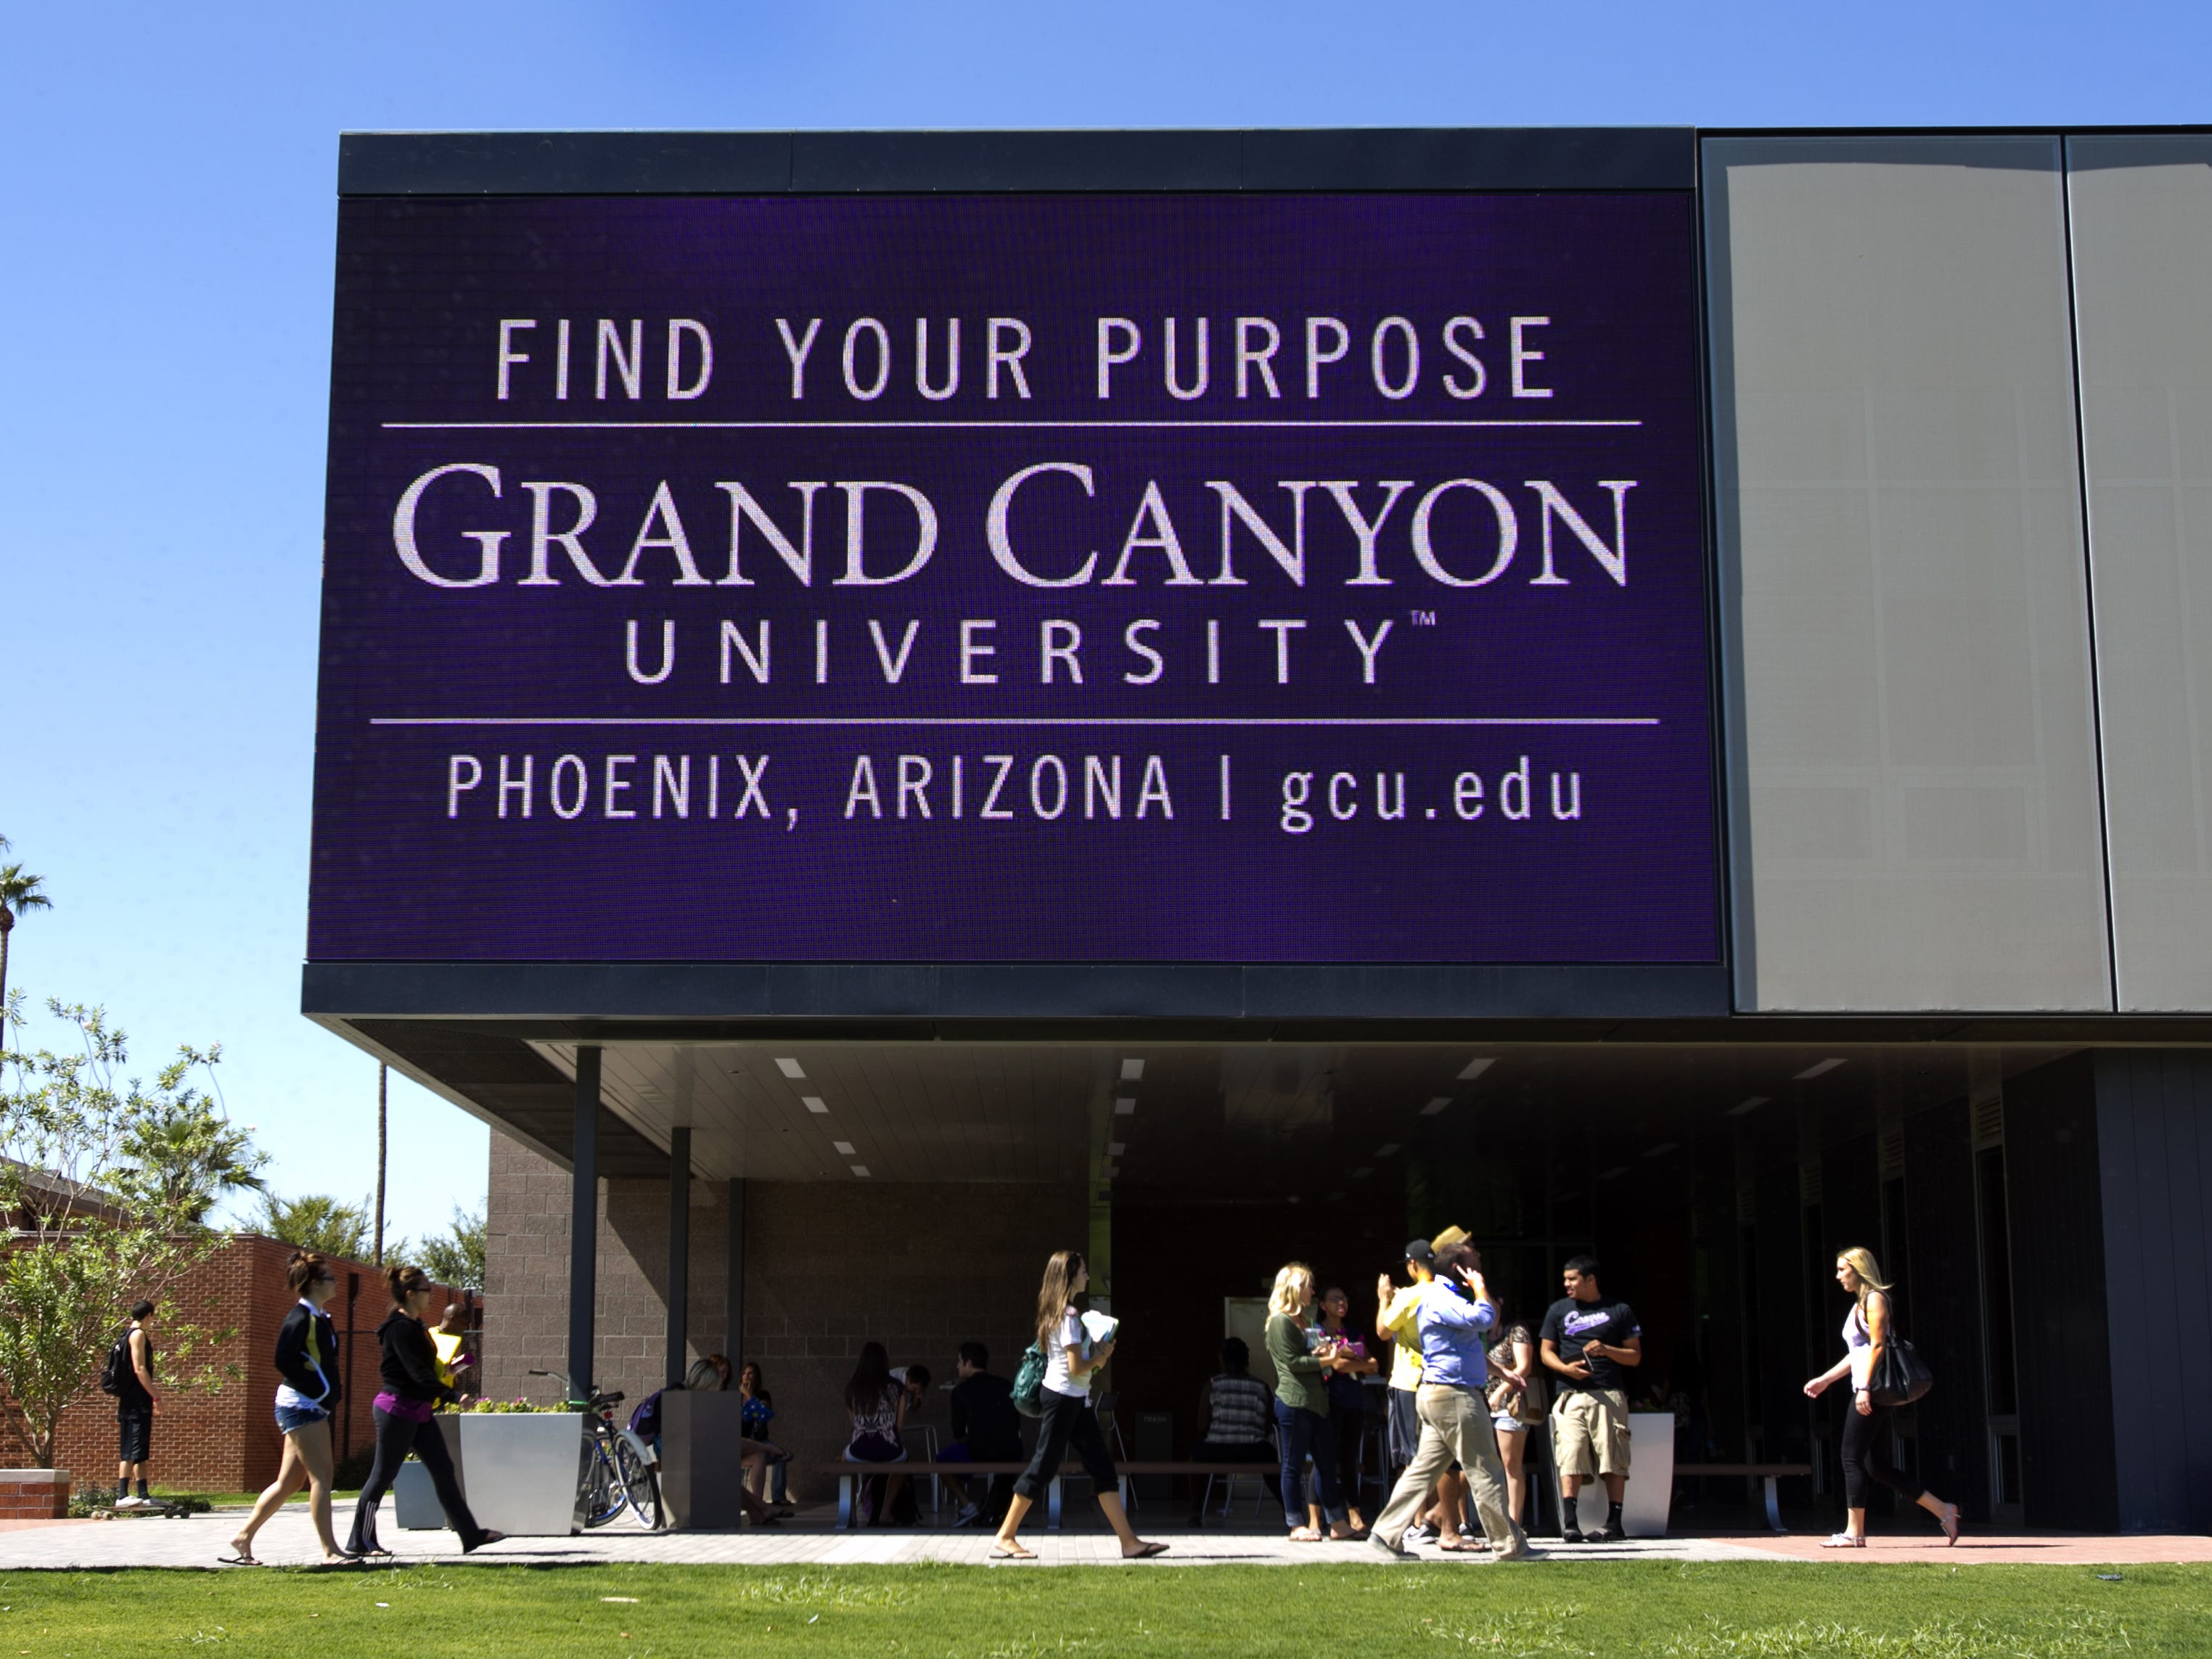 Grand Canyon is a large, private Christian university in Phoenix.